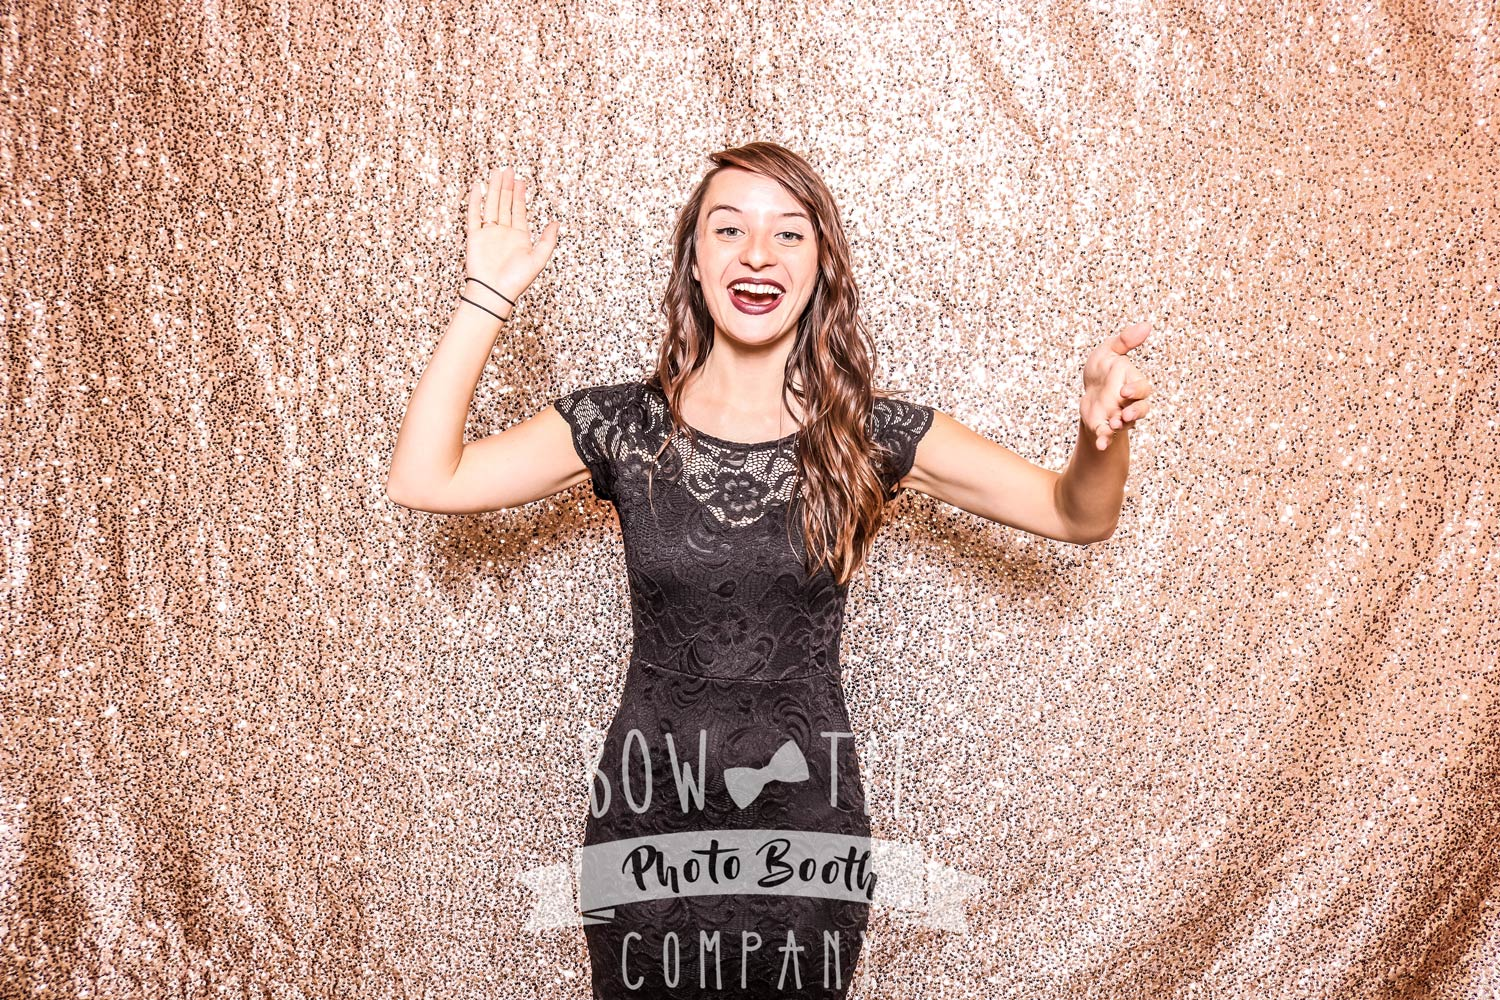 Champagne-Sequin-Photo-Booth-Buffalo-1